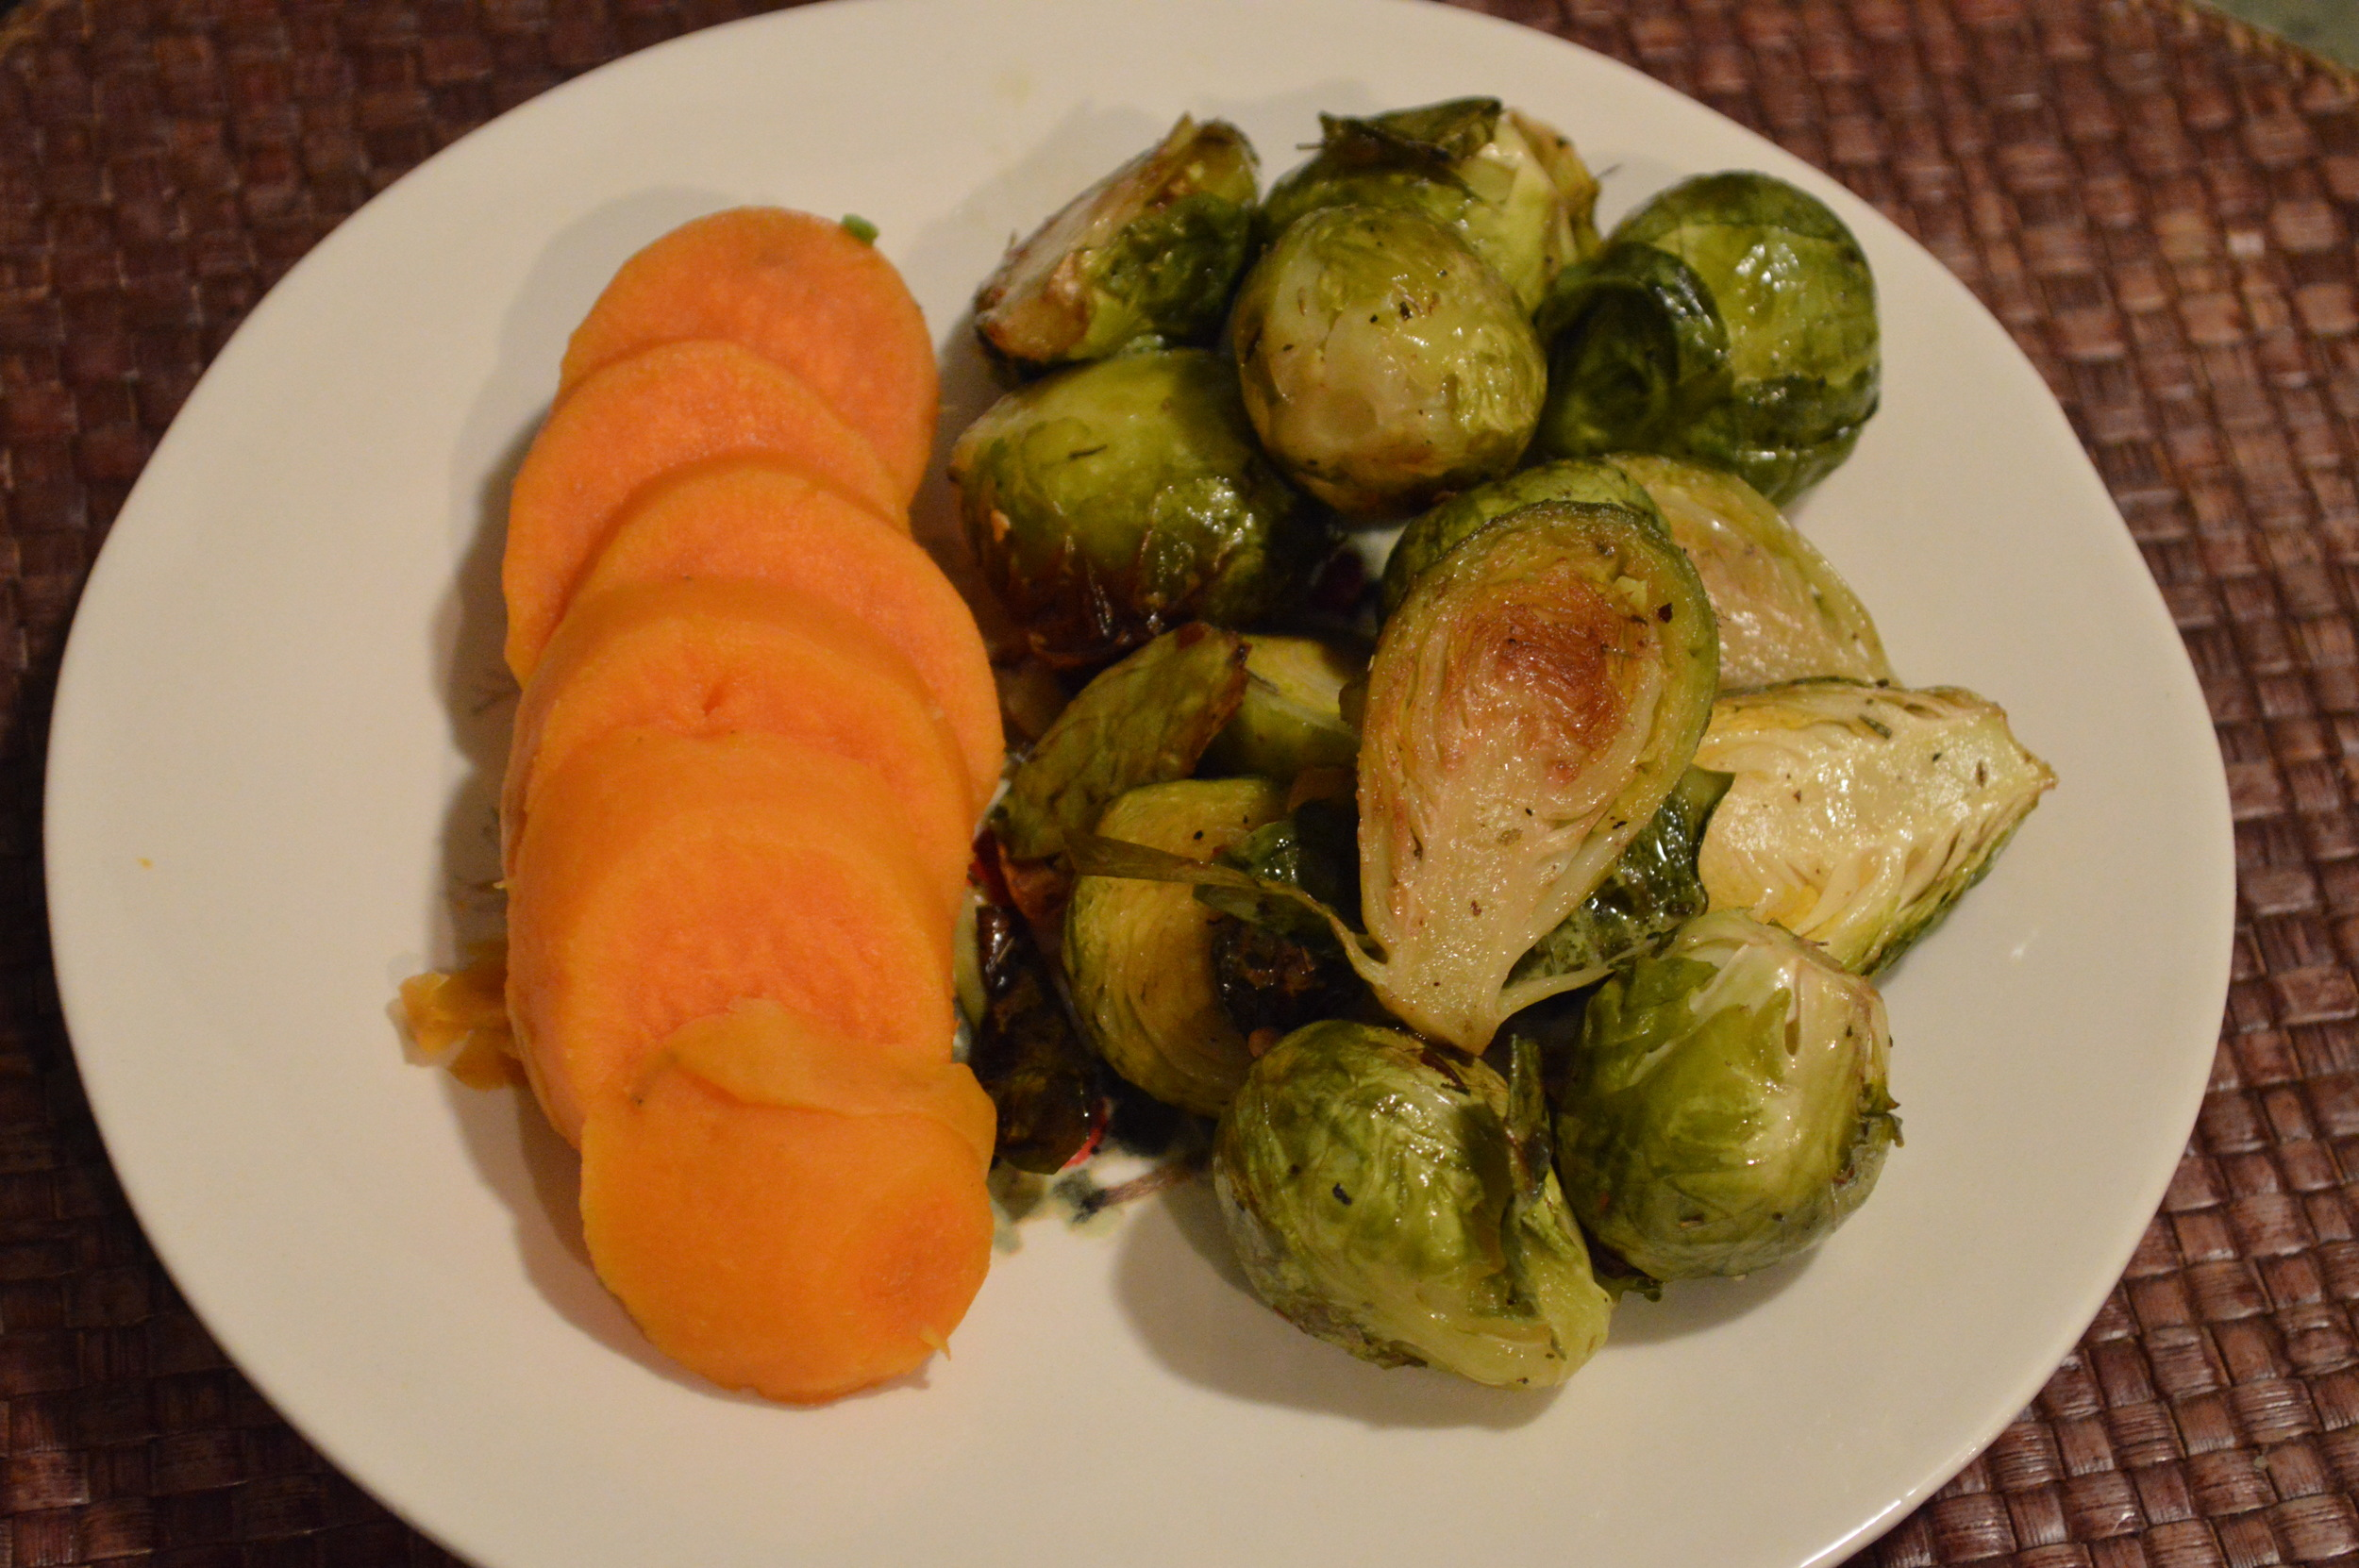 Sweet Potatoes & Roasted Brussels Sprouts